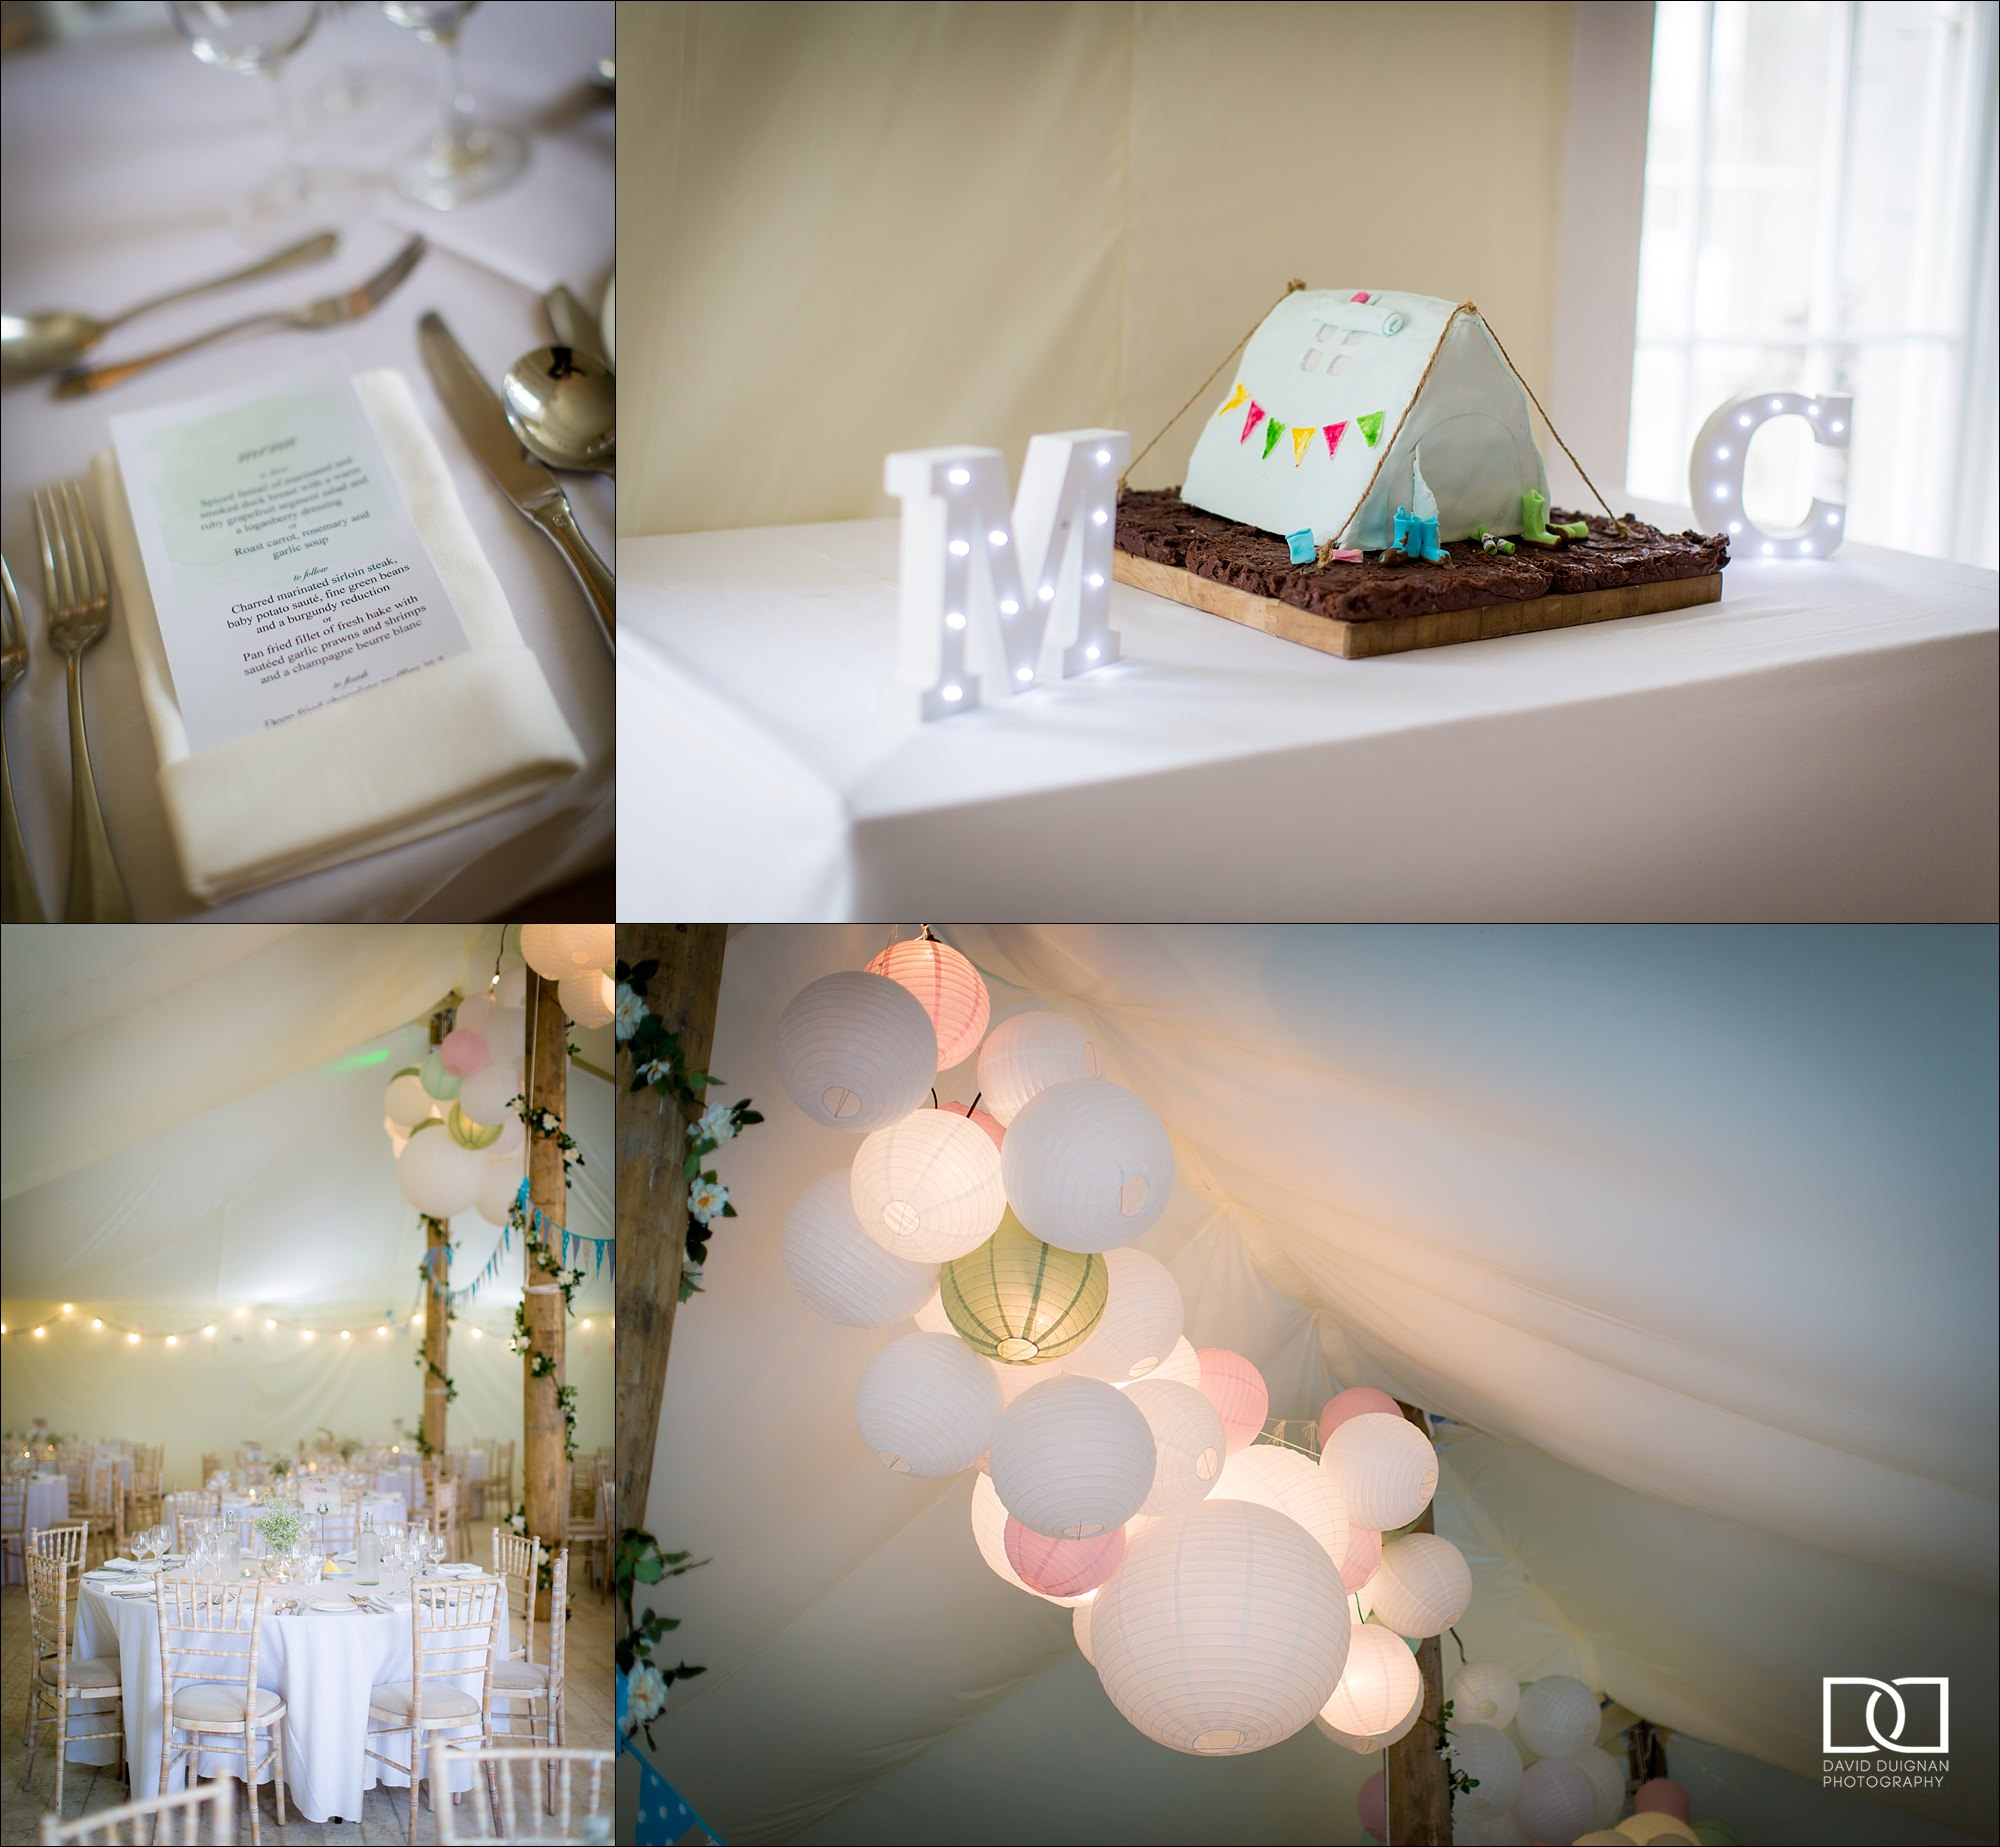 dublin wedding photographer david duignan photography horetown house wedding wexford Ireland 0037